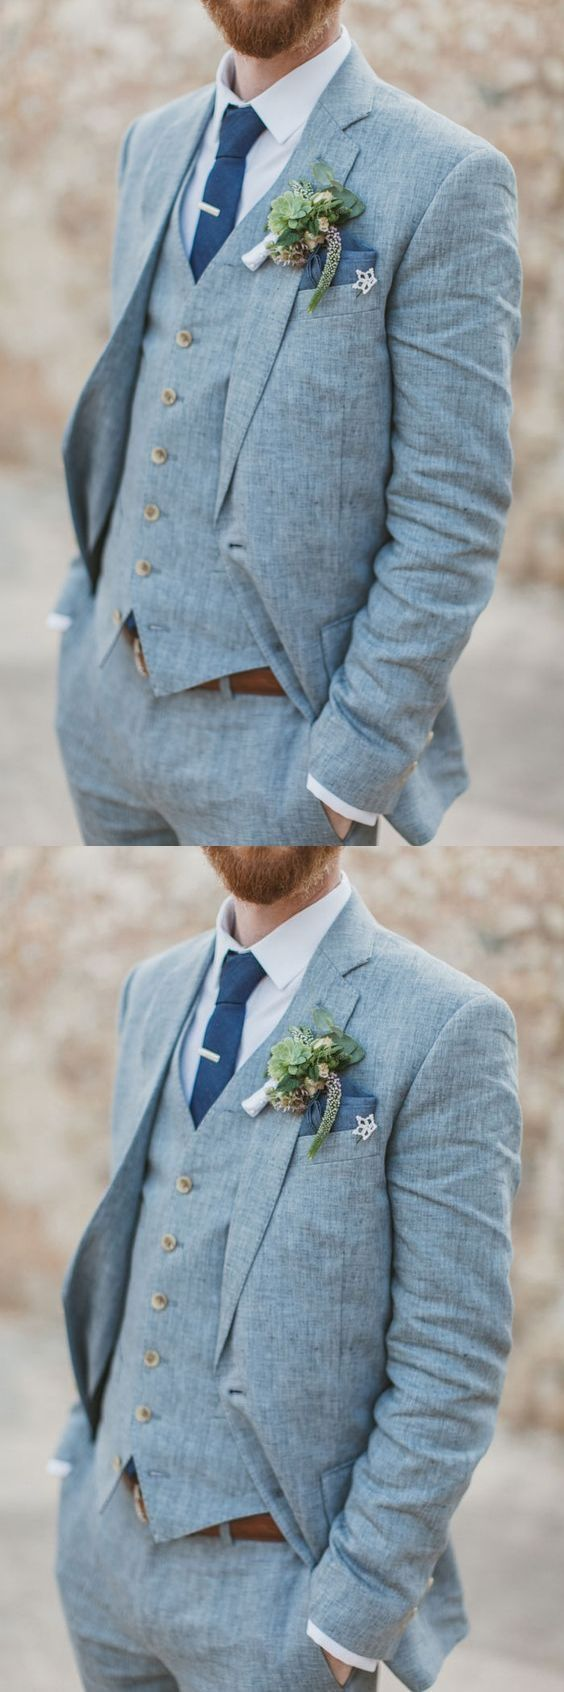 Light Blue Linen Men Suits For Beach Wedding 3 Piece Groom Tuxedos ...